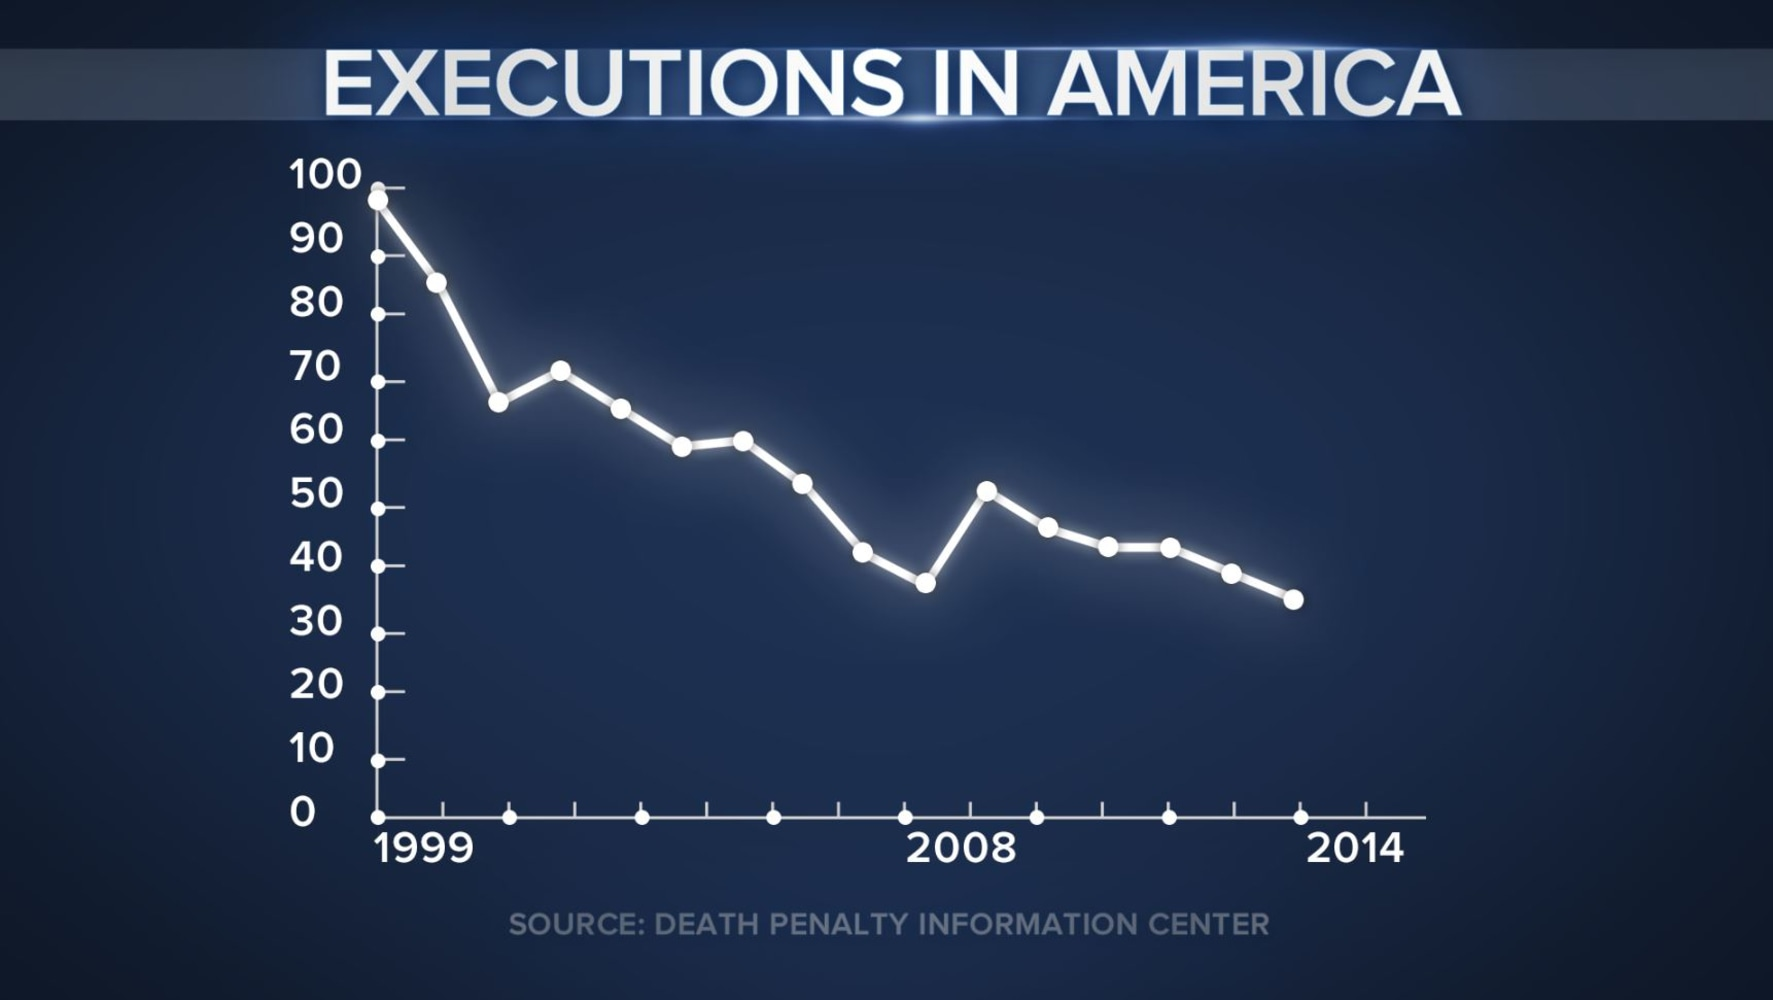 the issue of capital punishment and death penalty in the united states Executions are up in the united states this  in 2017, but downward trend continues  of capital punishment say the death penalty remains on.